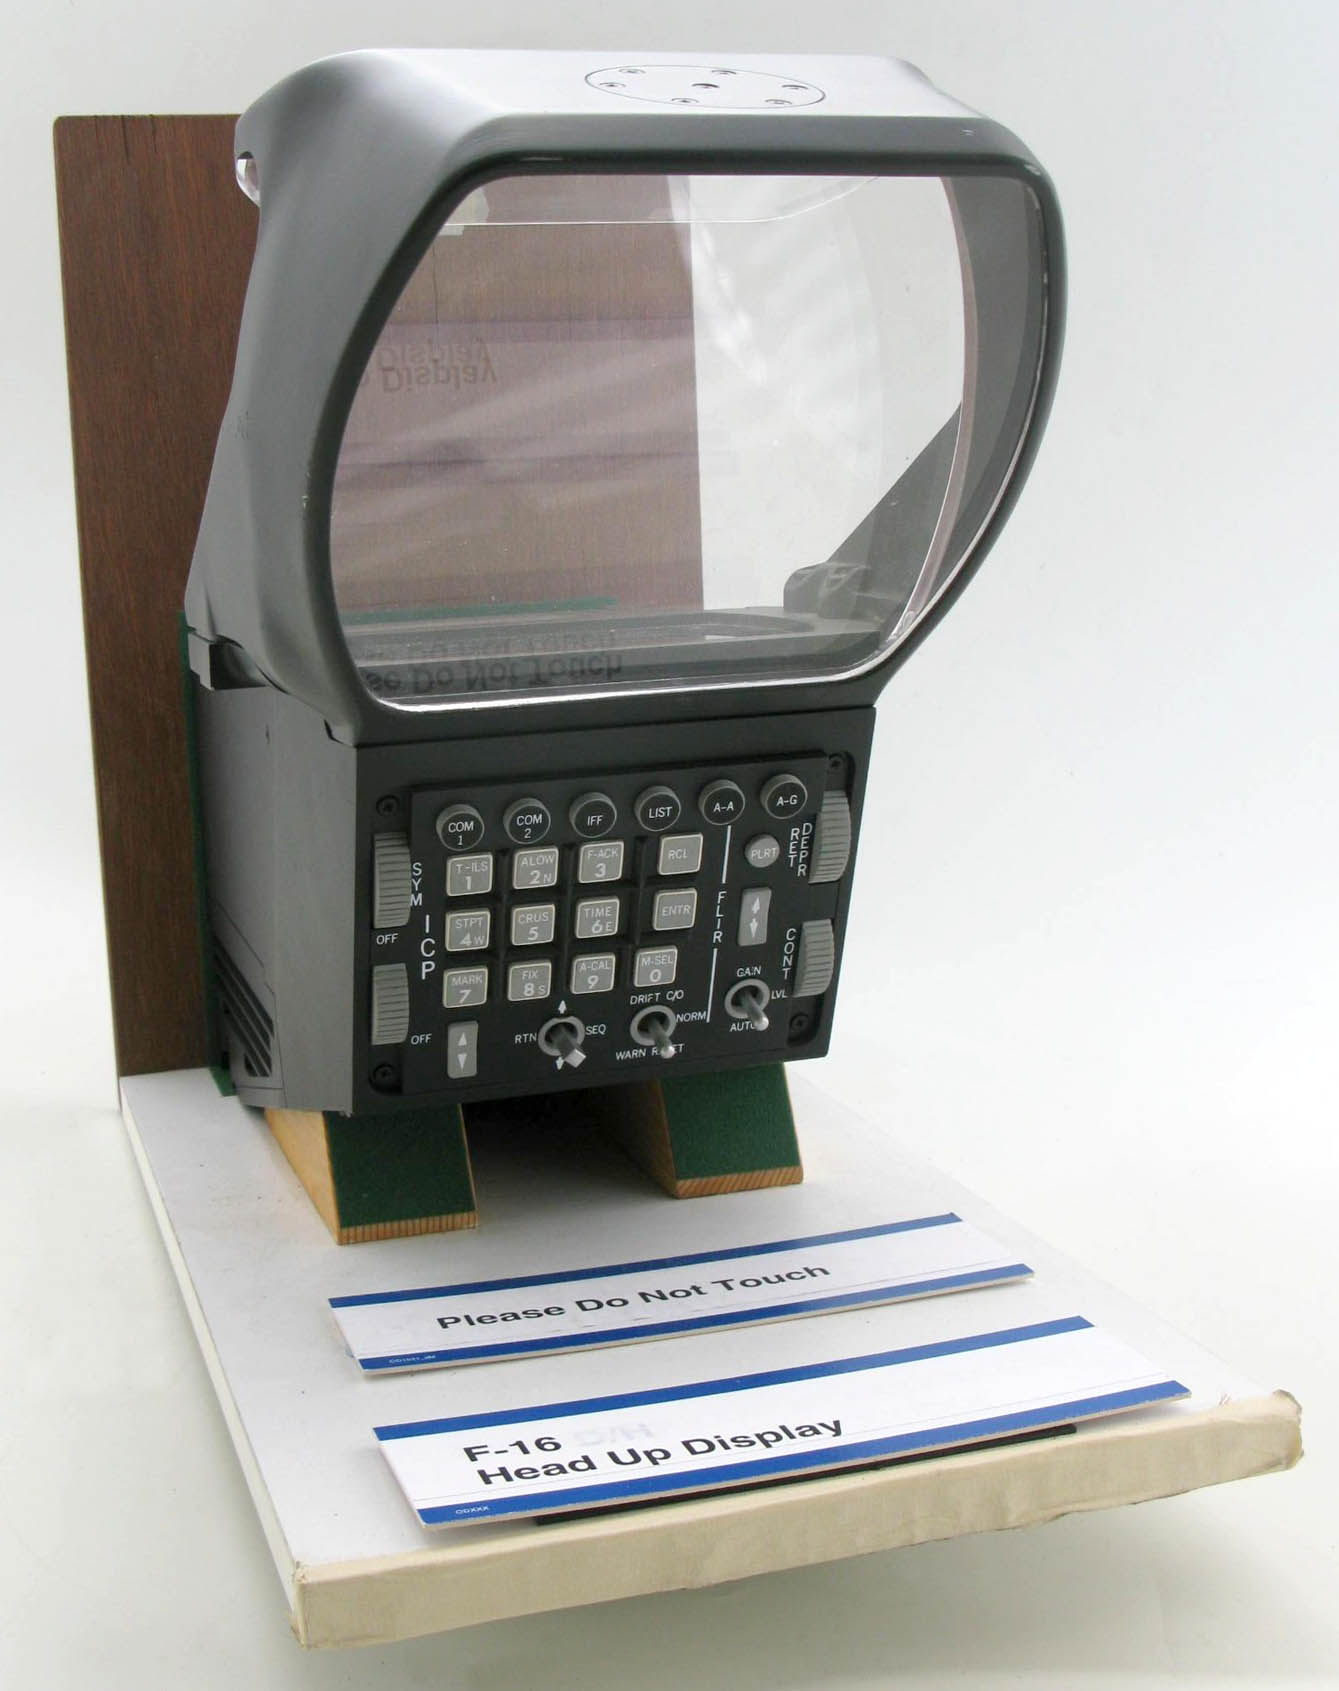 F-16 LANTIRN HUD (display model)